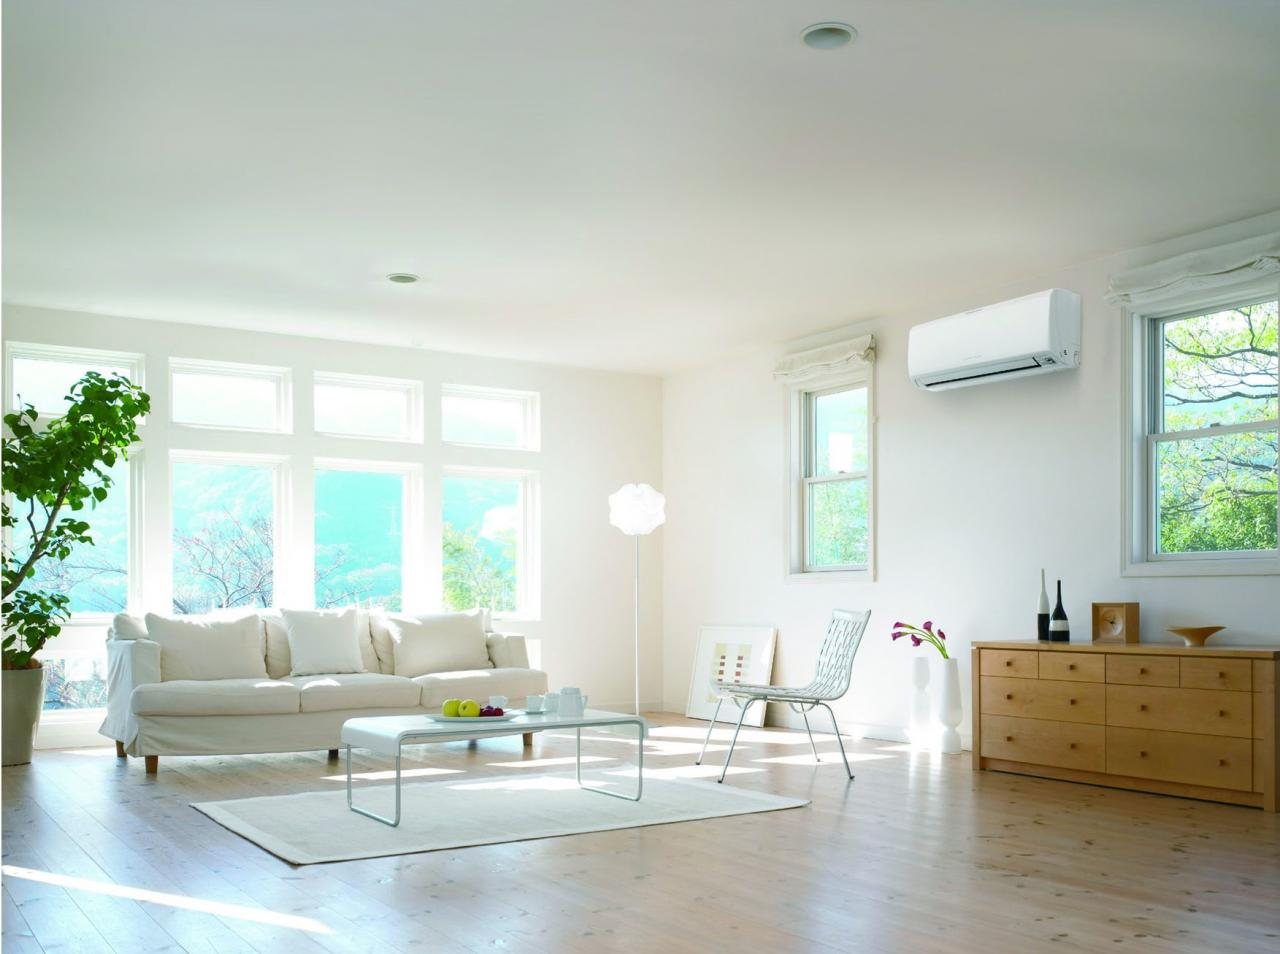 """Choose to buy a 1-way air-conditioner or a 2-way air-conditioner_1 """"srcset ="""" https://phongvu.vn/cong-nghe/wp-content/uploads/2019/07/The choice-buy-buy-machine- cold-1- afternoon-or-machine-cold-2-pm_7.jpg 1280w, https://phongvu.vn/cong-nghe/wp-content/uploads/2019/07/The choice-buy-buy-machine- cold 1-way -or- machine-cold-2-dimensional_7-300x224.jpg 300w, https://phongvu.vn/cong-nghe/wp-content/uploads/2019/07/The choice-buy-buy-machine- cold-1- afternoon-or-air-cold-2-dimensional_7-768x572.jpg 768w, https://phongvu.vn/cong-nghe/wp-content/uploads/2019/07/The choice-buy-buy-machine- cold-1 -directional-or-cold-machine-2-way_7-1024x763.jpg 1024w, https://phongvu.vn/cong-nghe/wp-content/uploads/2019/07/Community-choose-buy-machine-cold- 1-way-or-machine-cold-2-dimensional_7-80x60.jpg 80w, https://phongvu.vn/cong-nghe/wp-content/uploads/2019/07/Common- select- buy-machine- cold -1-dimensional-good-machine-cold-2-way_7-265x198.jpg 265w, https://phongvu.vn/cong-nghe/wp-content/uploads/2019/07/Community-choose-buy -machine- cold-1 -machine-or-machine-cold-2-dimensional_7-696x519.jpg 696w, https://phongvu.vn/cong-nghe/wp-content/uploads/2019/07/Community-choose- buy-machine- 1-way-or-machine-cold-2-way_7-1068x796.jpg 1068w, https://phongvu.vn/cong-nghe/wp-content/uploads/2019/07/Common- select- buy-machine- cold -1-dimensional-or-machine-cold-2-dimensional_7-564x420.jpg 564w """"sizes ="""" (max-width: 1280px) 100vw, 1280px"""